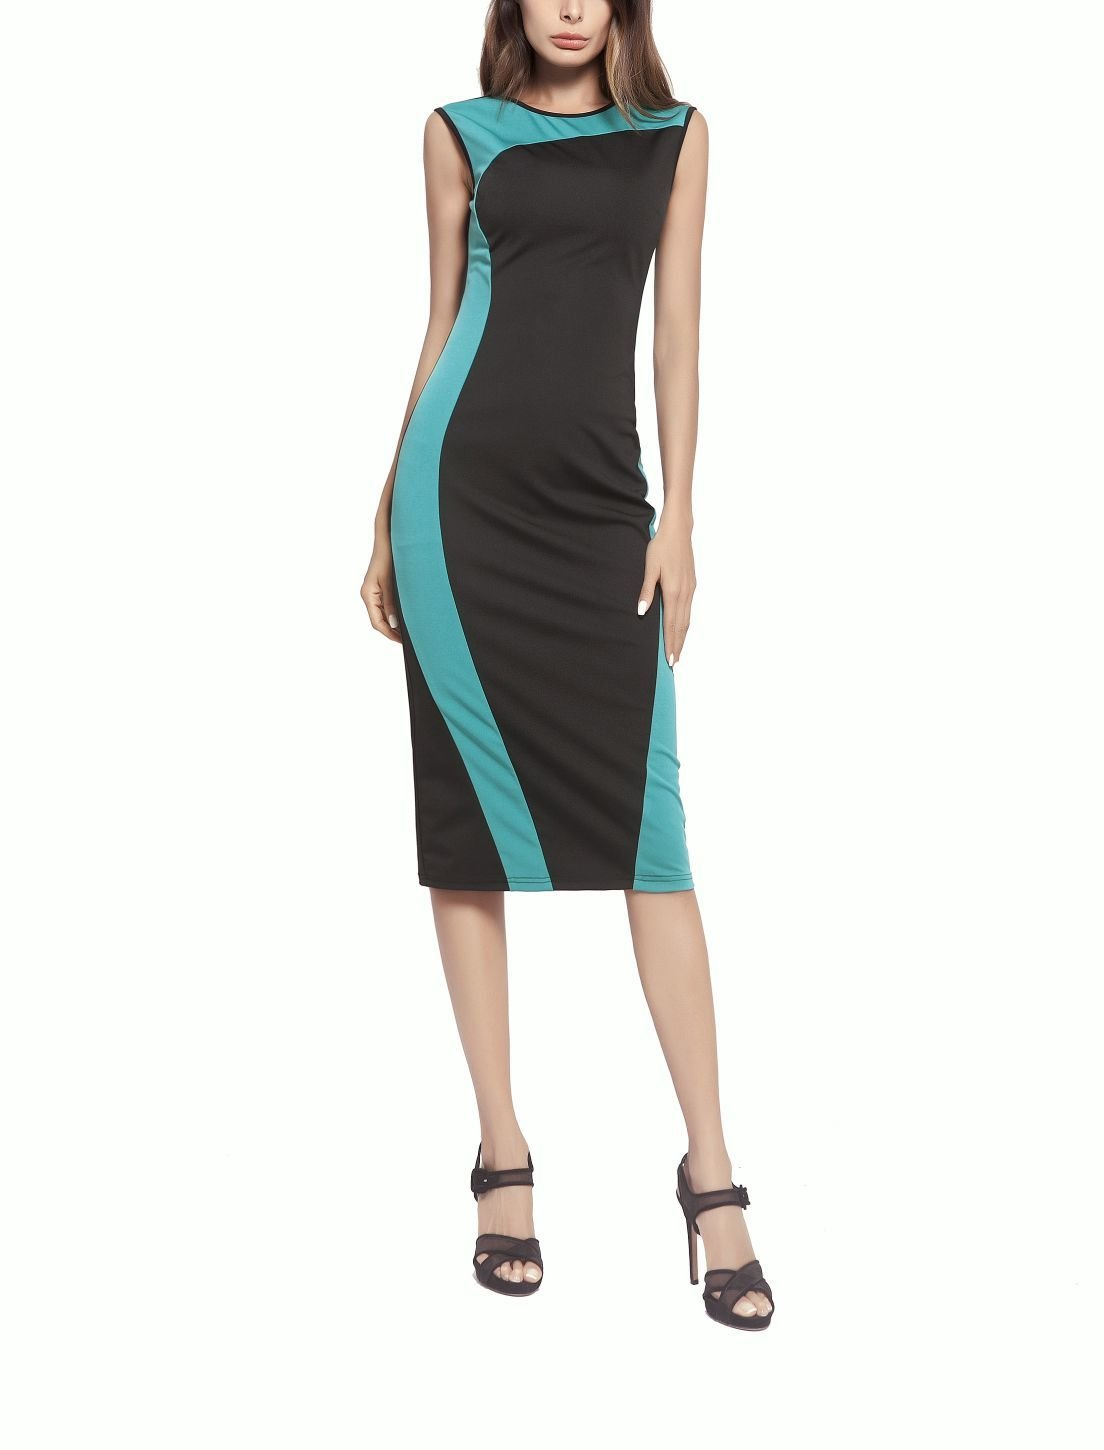 Column Dress for Work with Contrast Color Trim